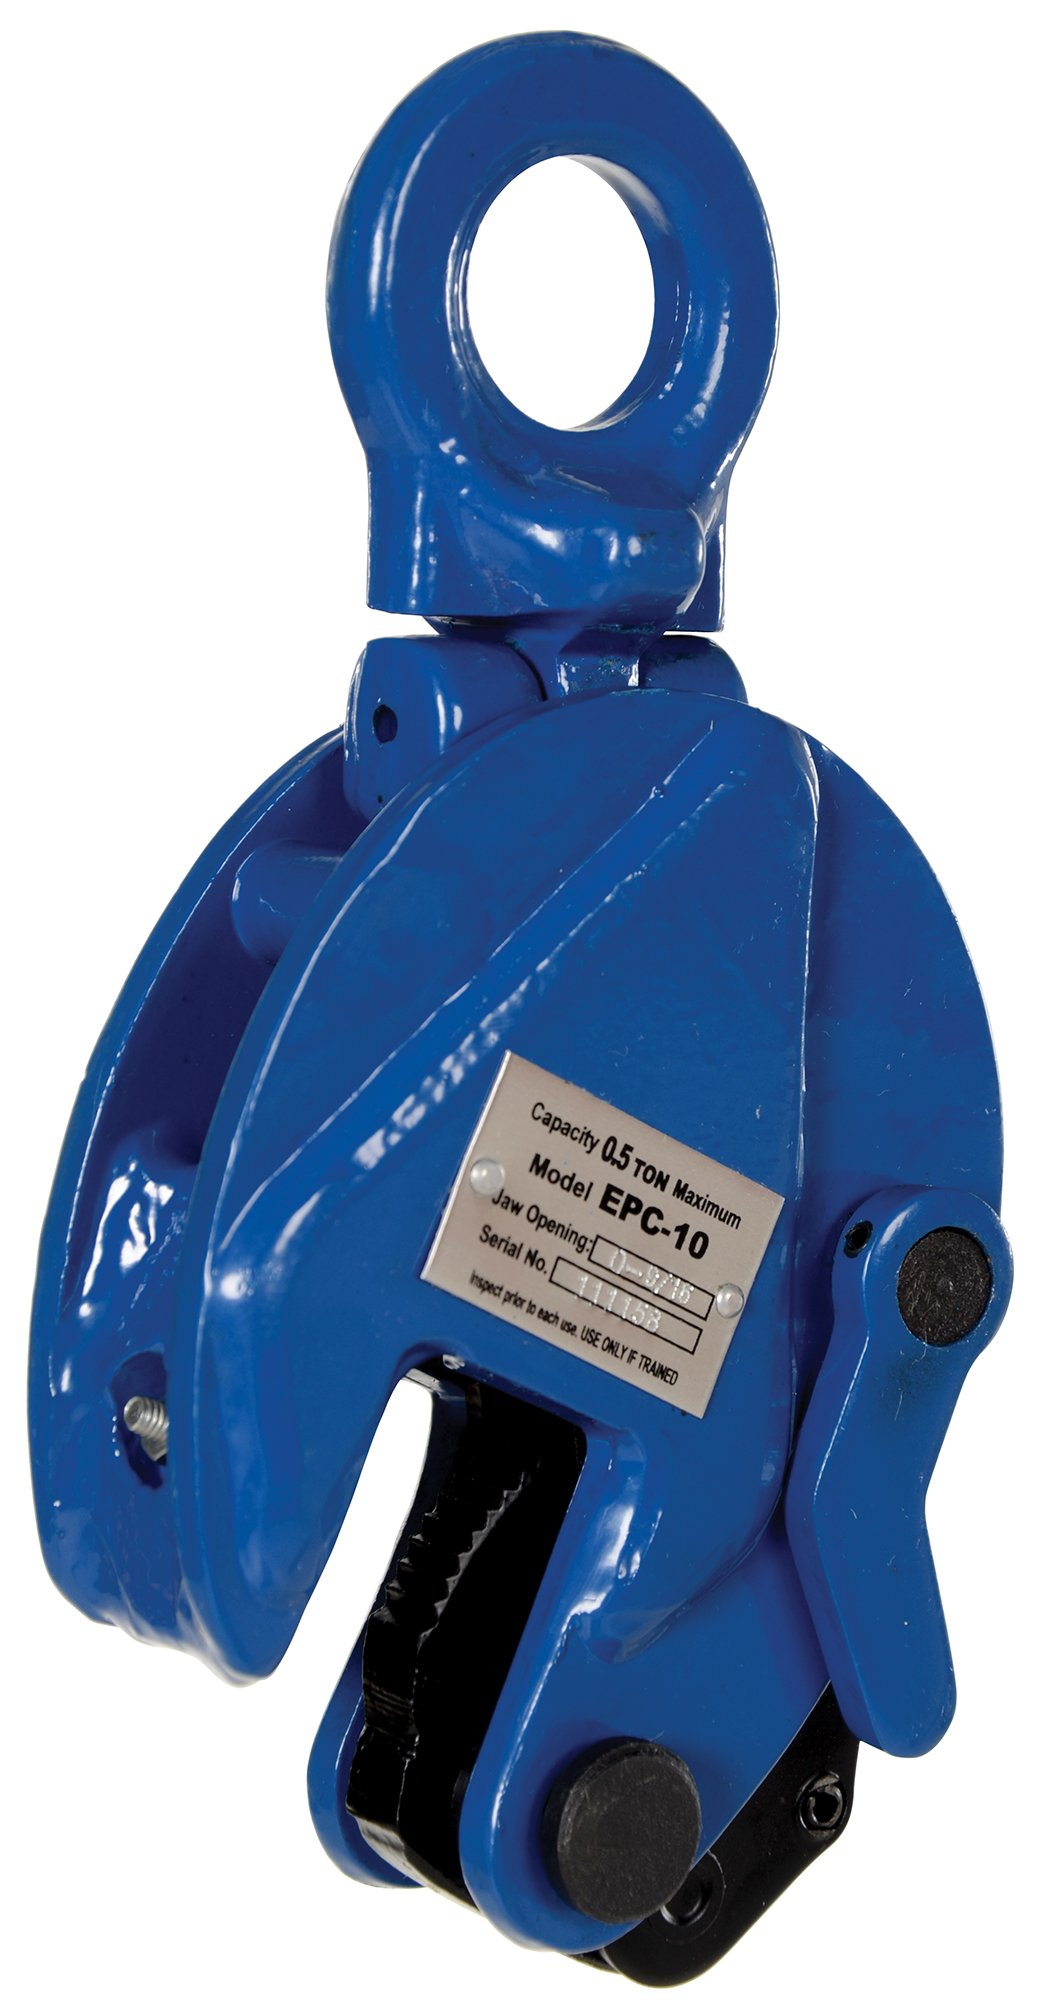 Vestil EPC-10 Vertical Plate Clamp, 0.60'' Plate Thickness, 1000 lbs Working Load Limit, 1.81'' Bale Opening